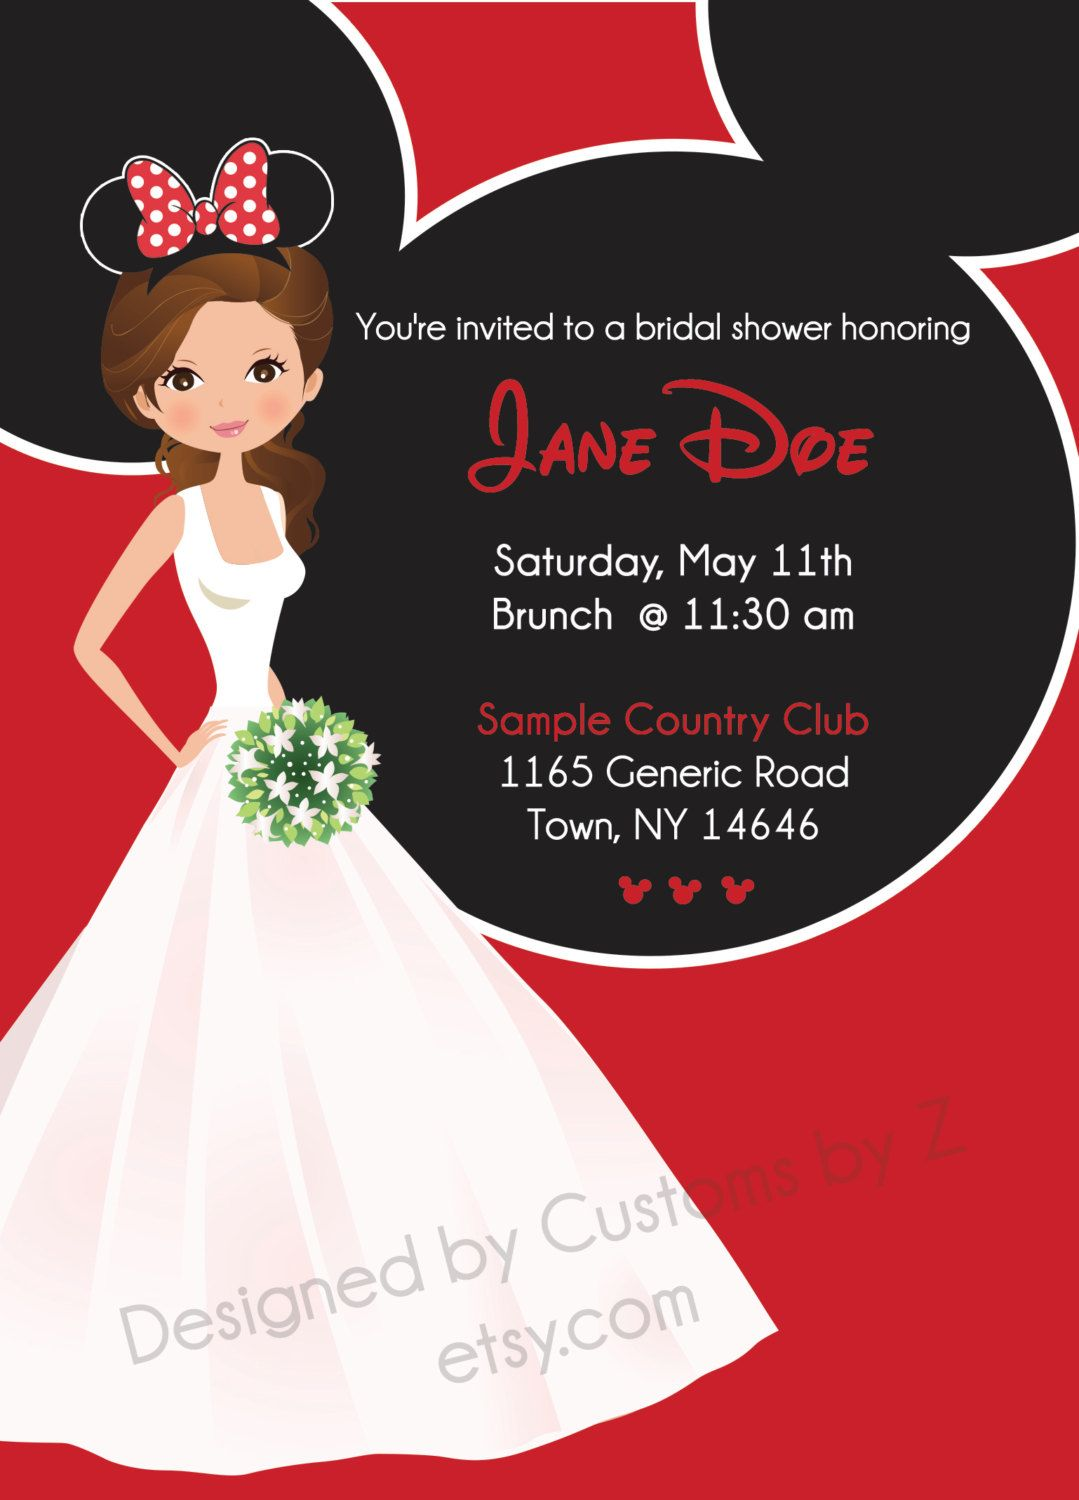 Minnie Mouse Theme Bridal Shower Invitation Front And Back